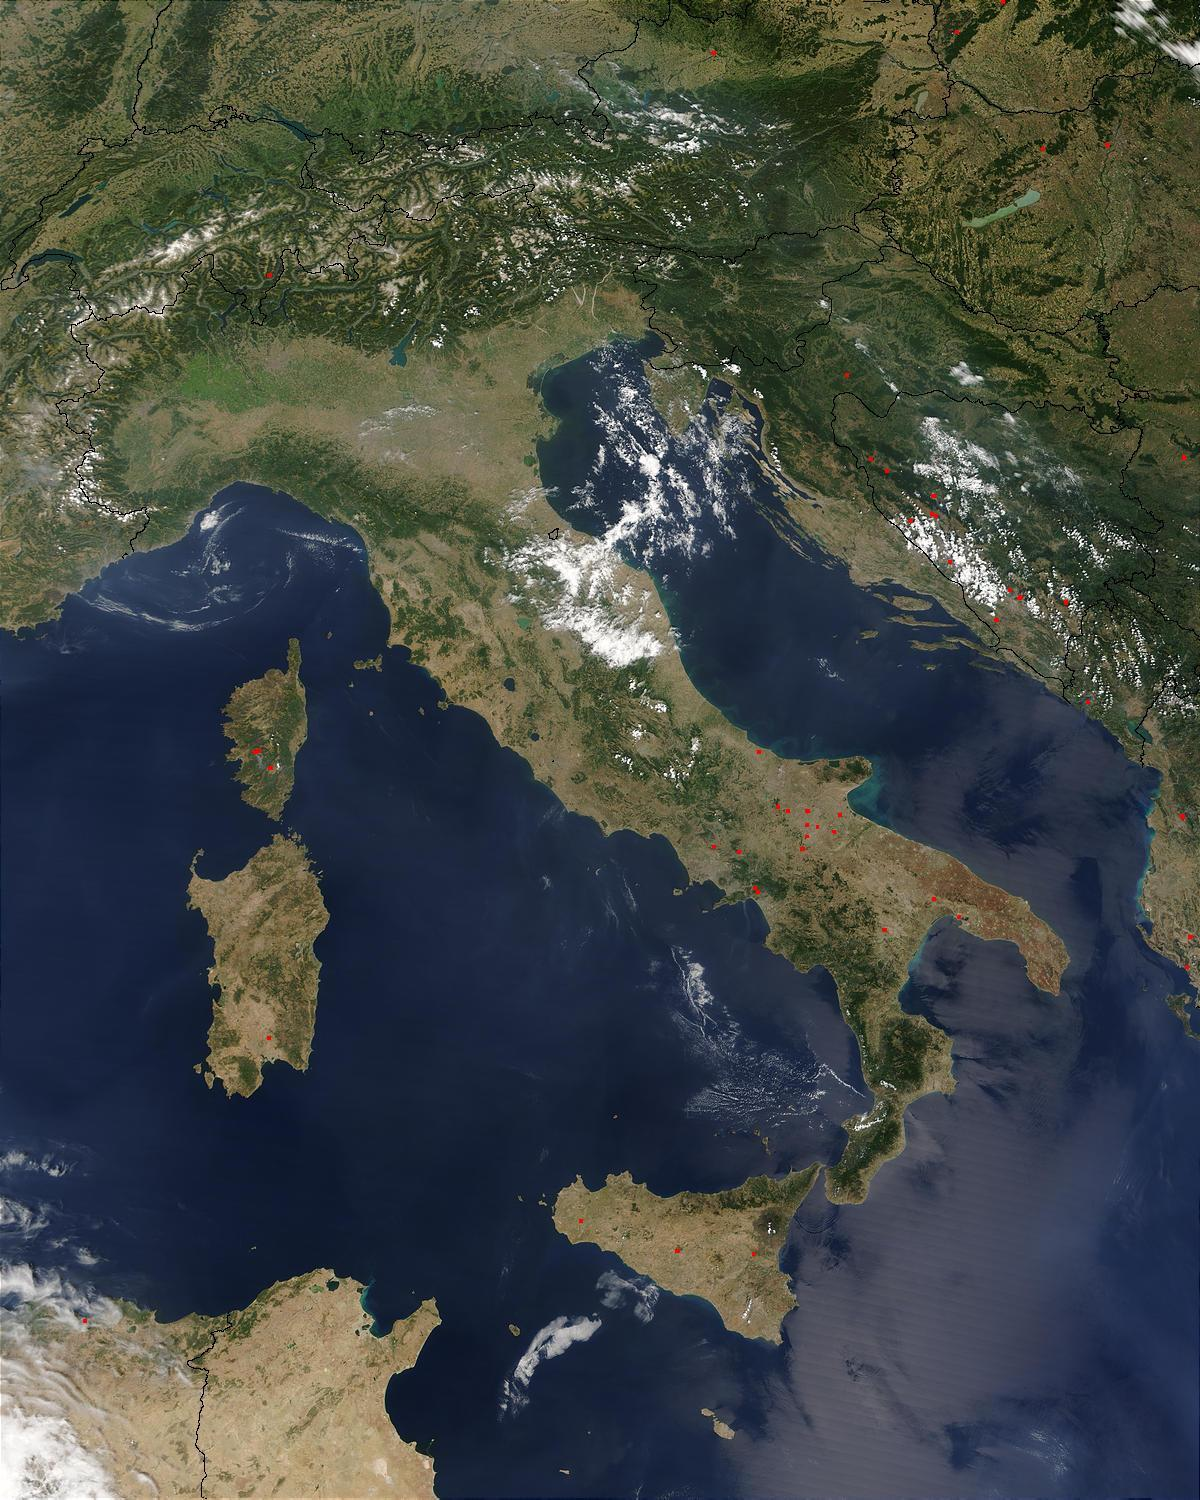 satellite map of italy Italy Satellite Map Map Of Italy Satellite Southern Europe